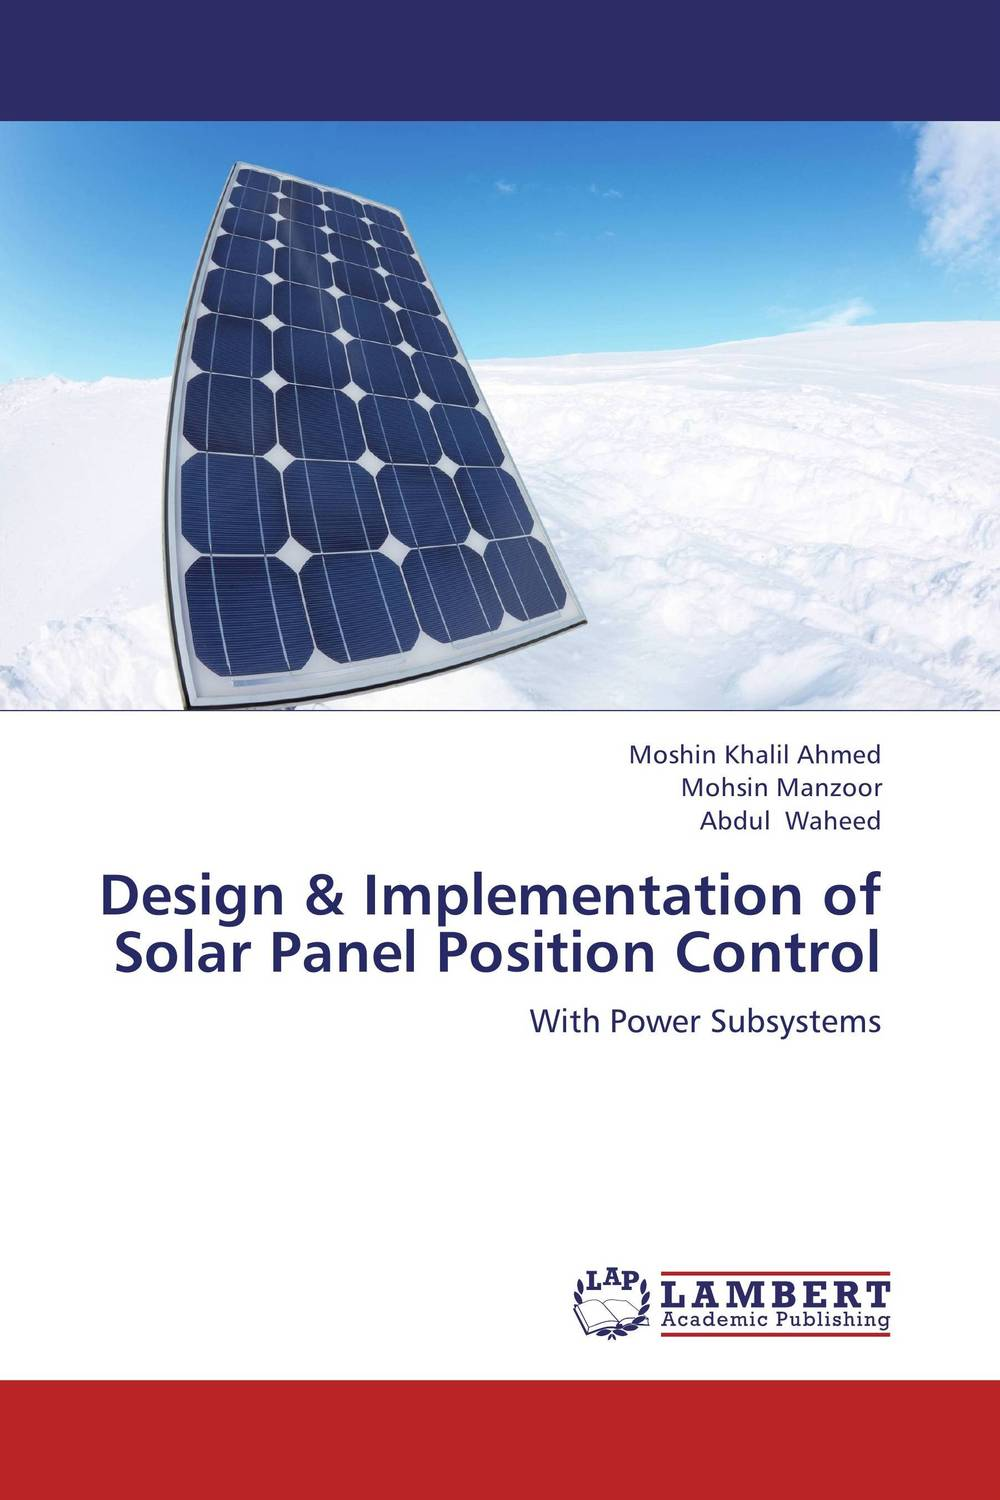 Design & Implementation of Solar Panel Position Control